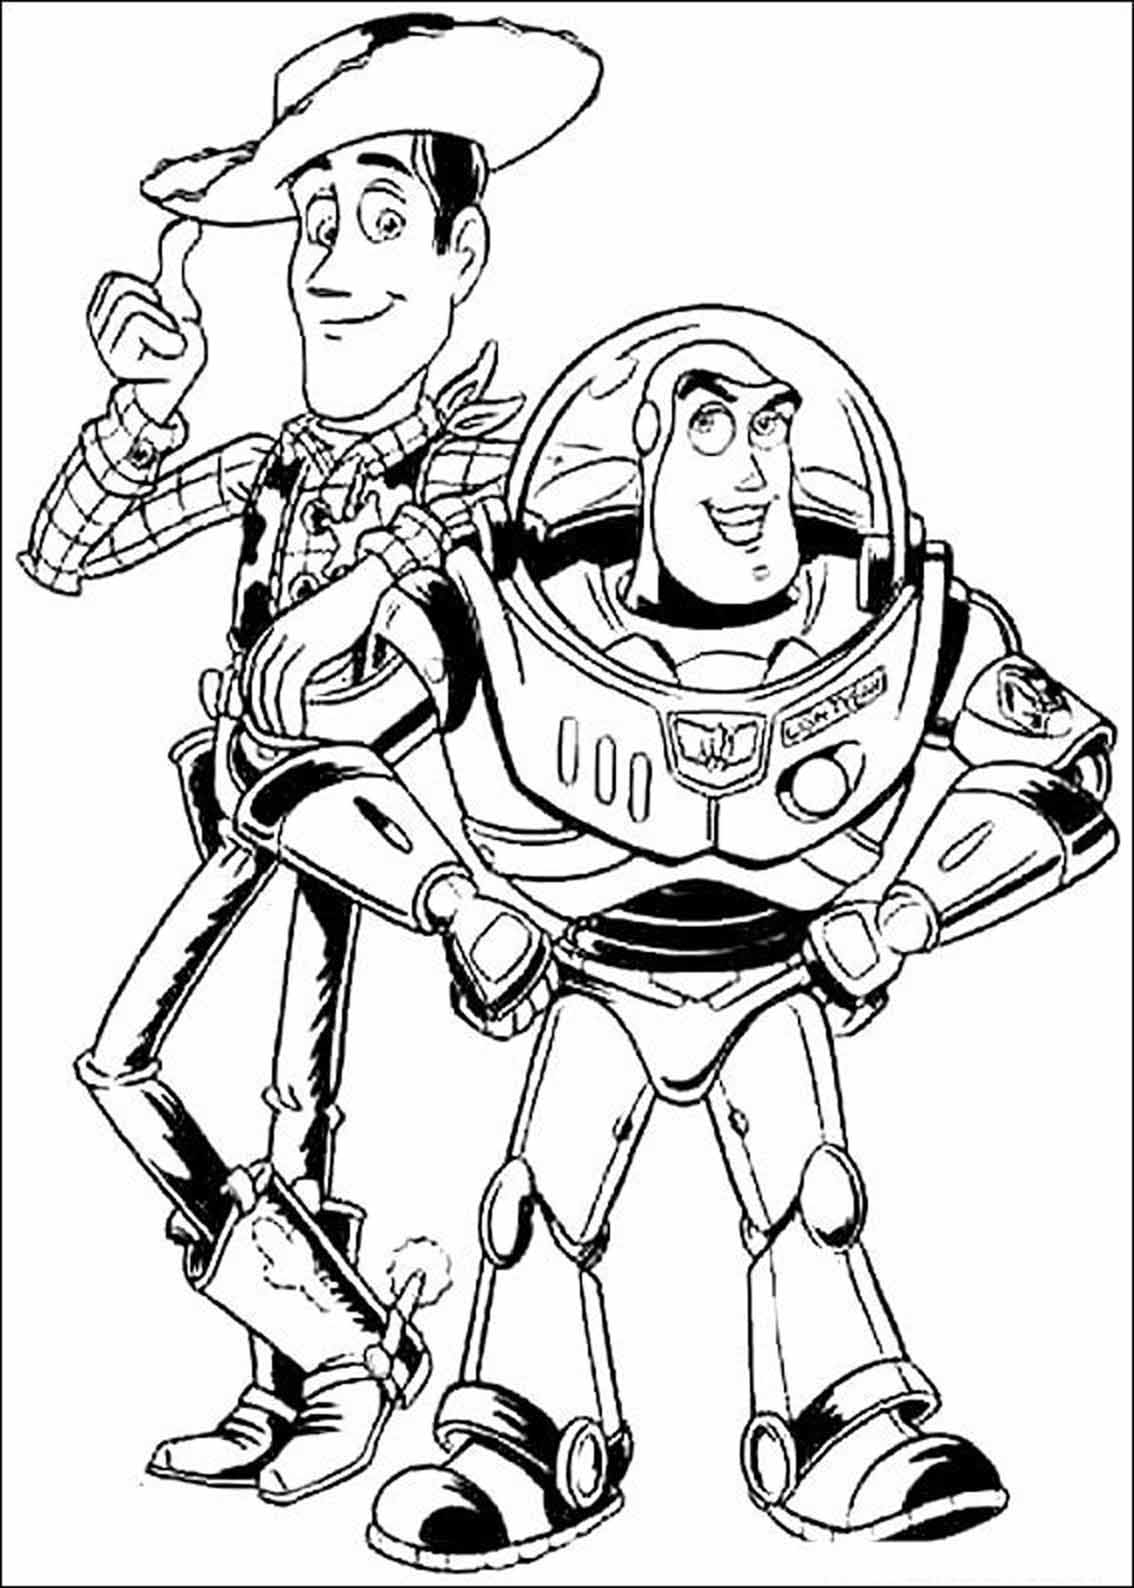 coloring page toy story toy story 04 342 at printable coloring pages coloring story page toy